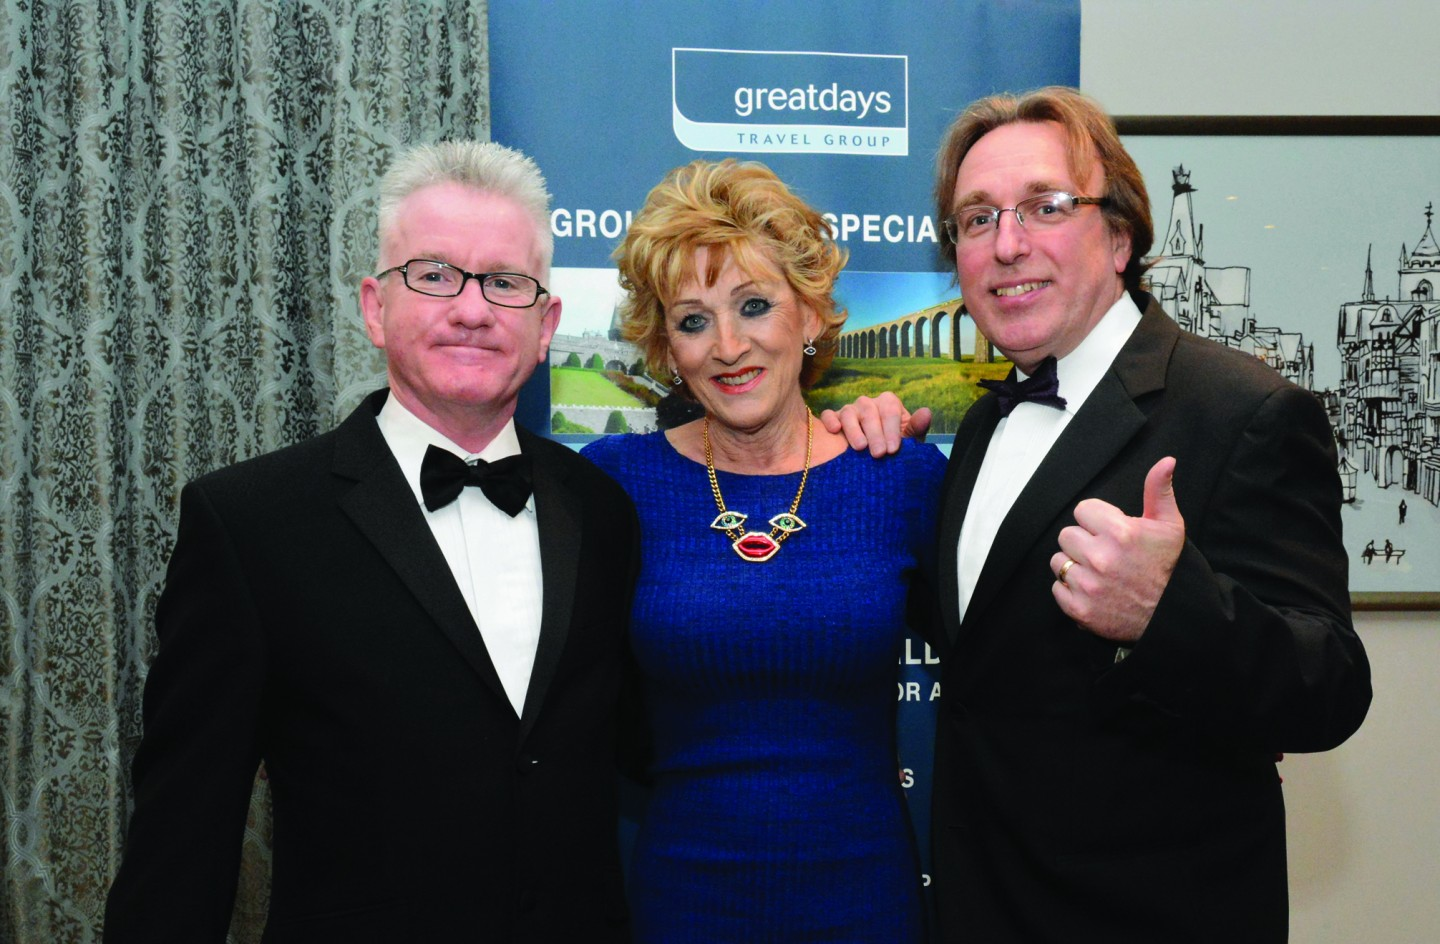 L-R Martin Slater, Jayne Kerr and Paul Beaumont